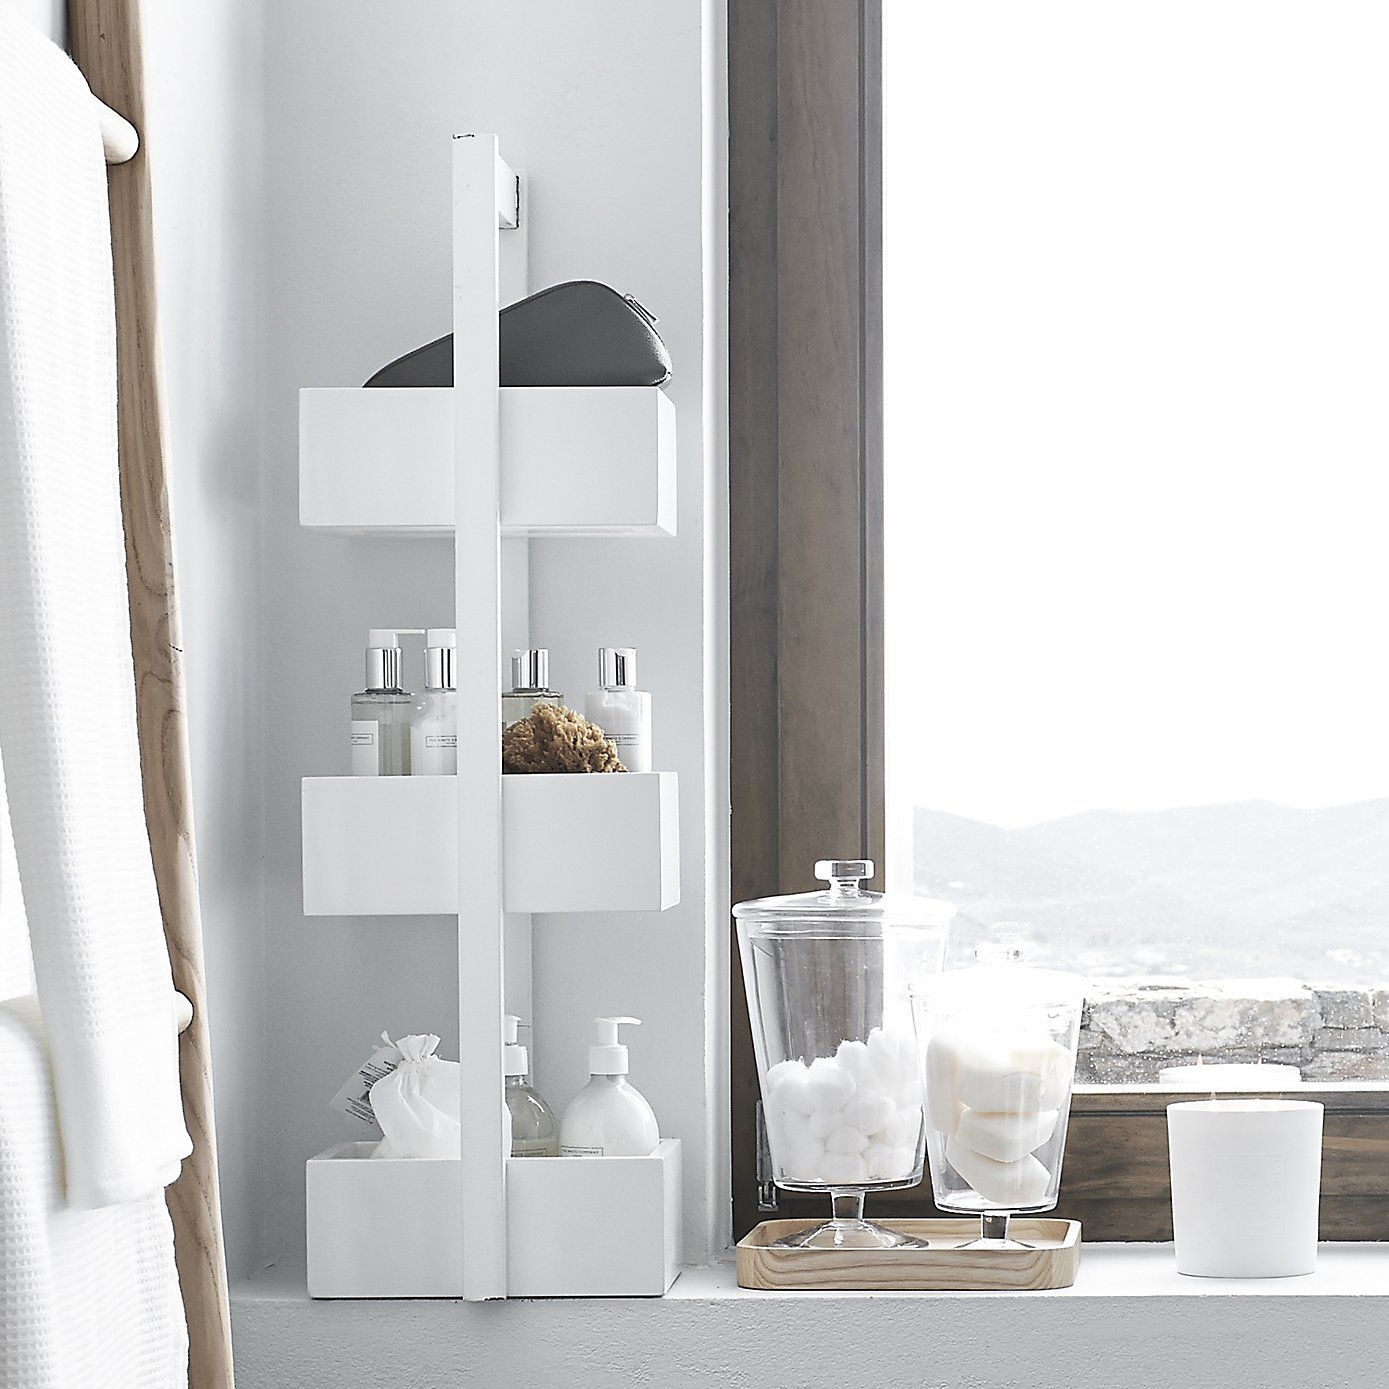 Bathroom Caddy from The White Company | Home | Pinterest | Bathroom ...